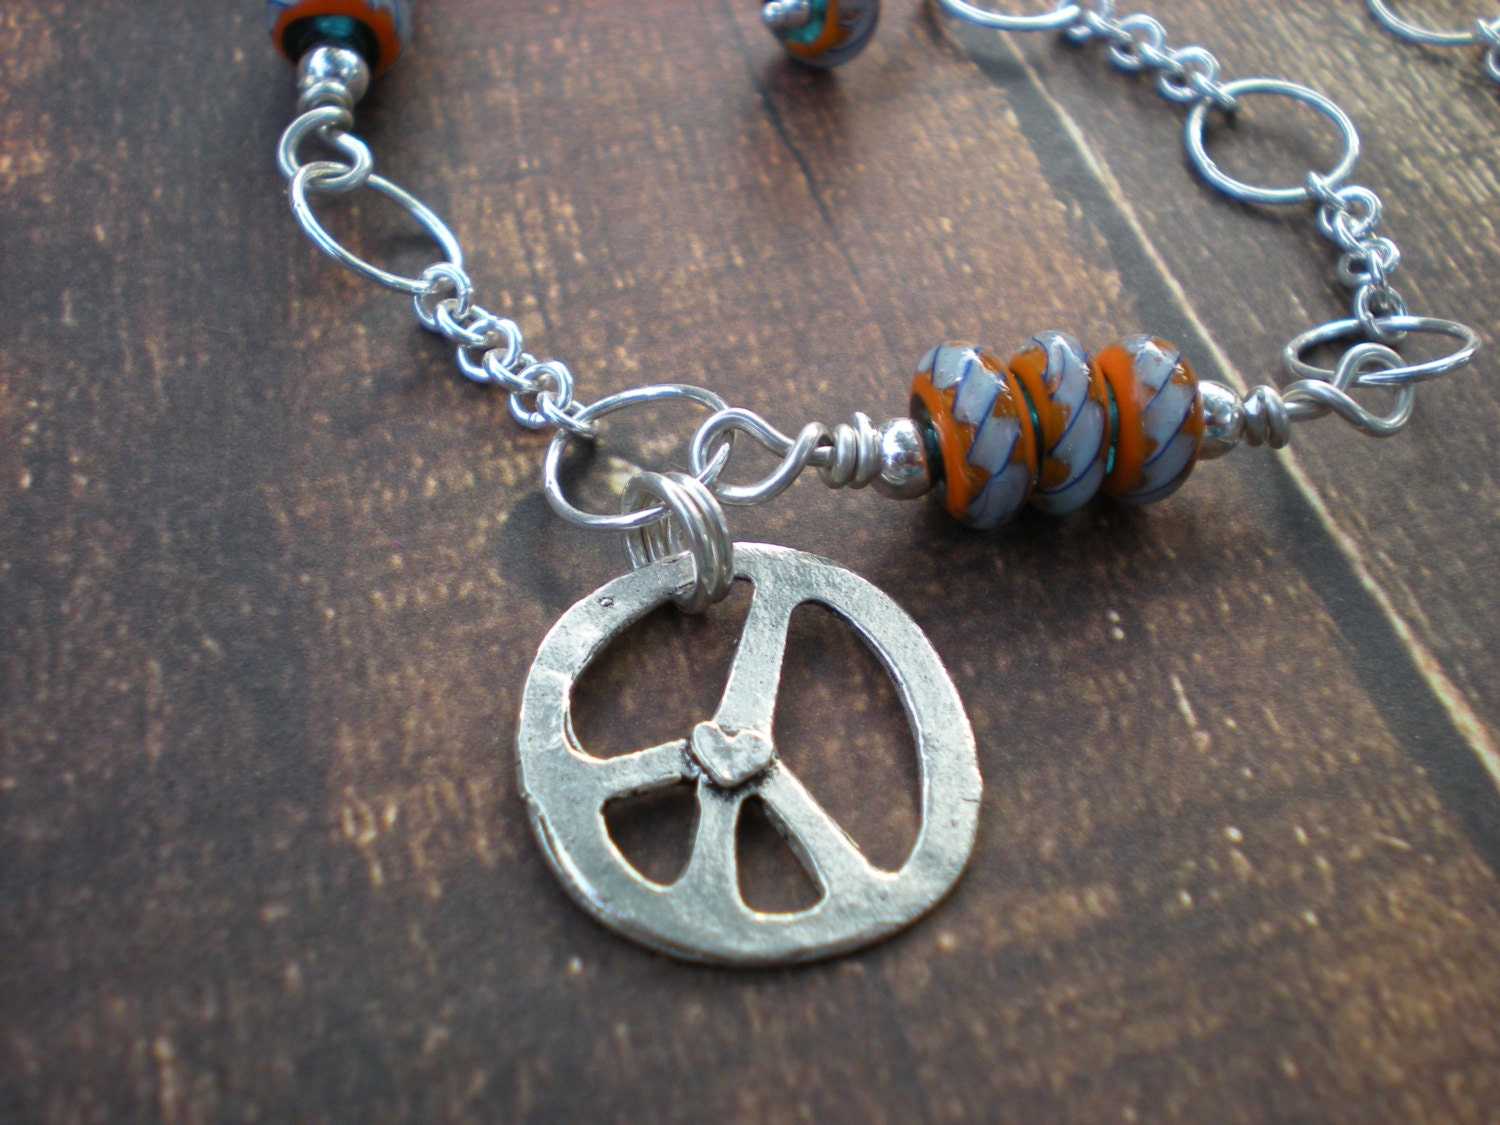 Walk on for peace anklet, Indonesian glass beads, peace sign charm, sterling silver, unique jewelry by Grey Girl Designs on Etsy - greygirldesigns